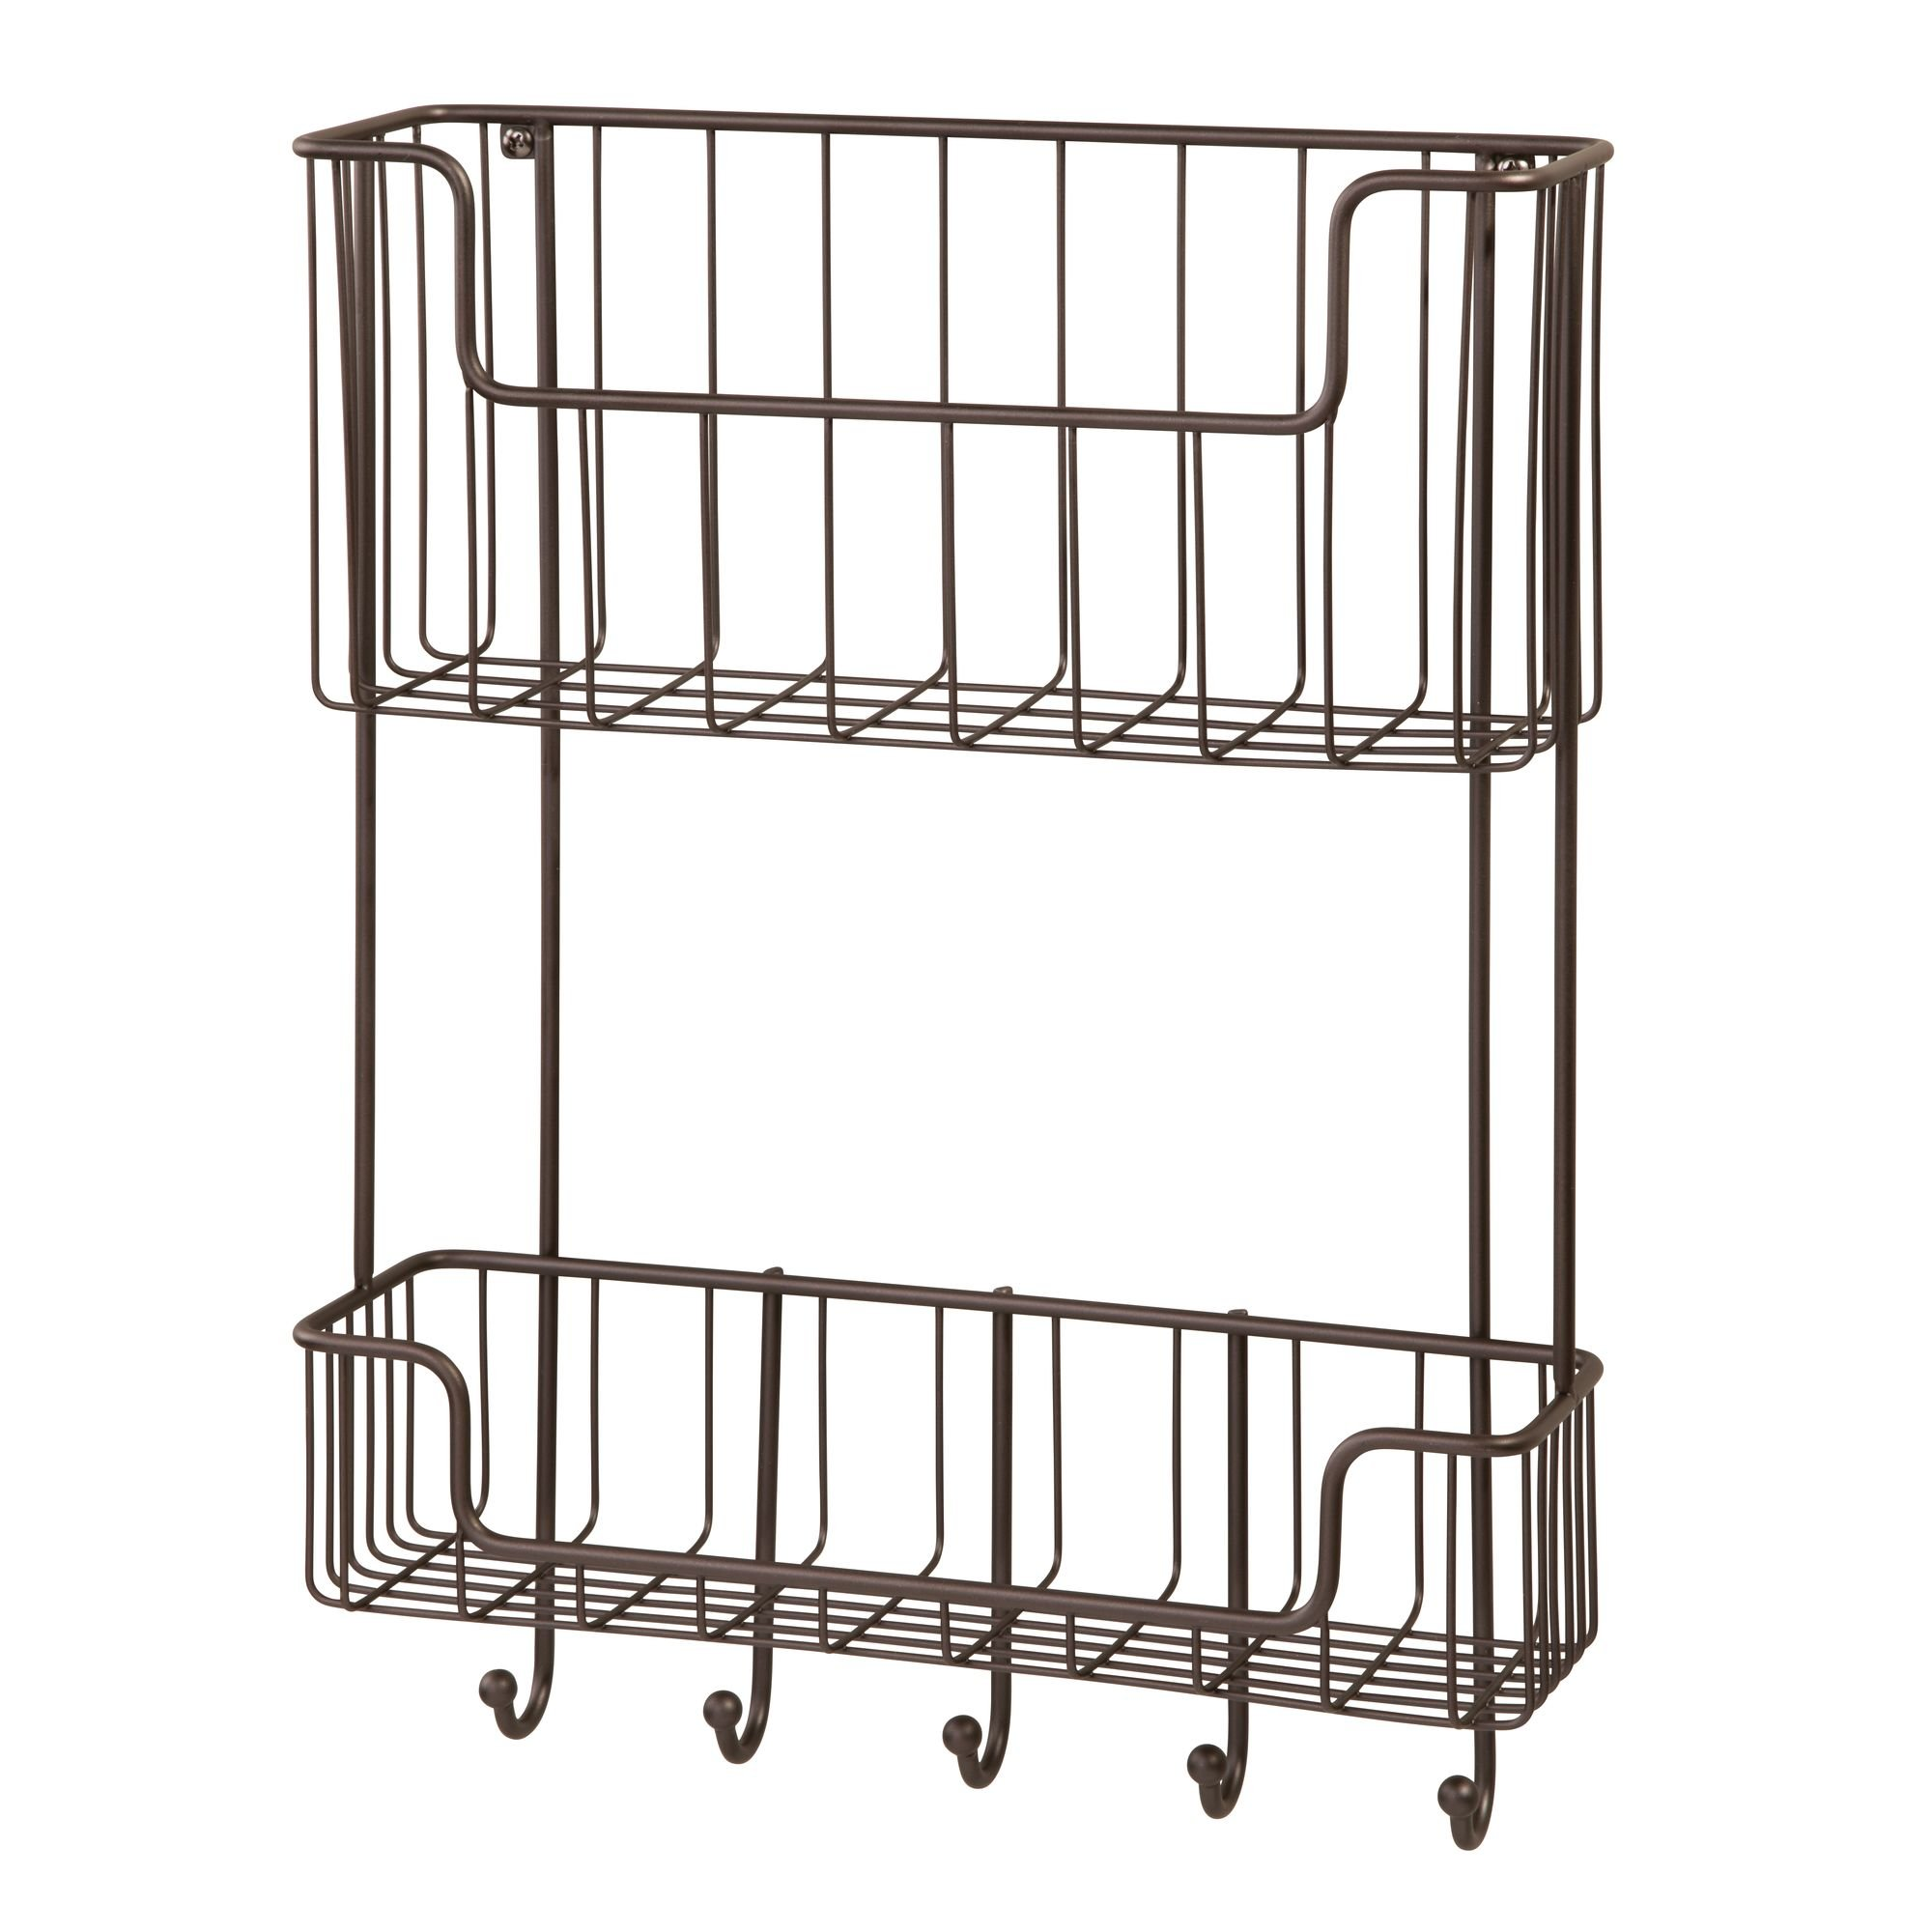 mDesign Wall Mount 2-Tier Mail, Letter, Magazine Holder, Key Rack, and Accessory Organizer for Entryway, Hallway, Mudroom – Strong Steel Wire Design, Bronze by mDesign (Image #5)